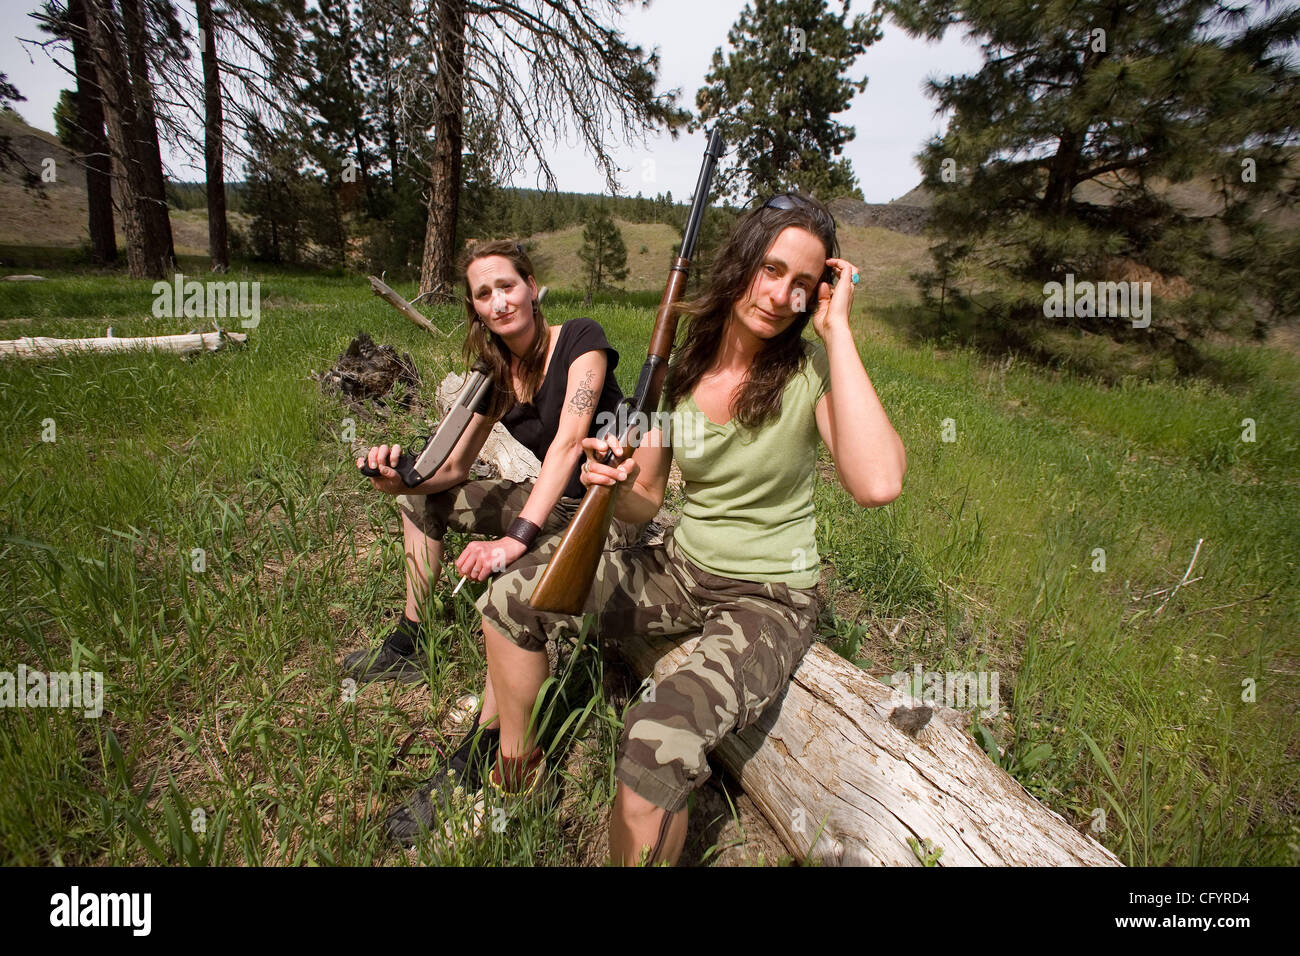 Roslyn,WA. While out and about in the back country  of eastern WASHINGTON, you may cross paths with a pair you hadn't - Stock Image